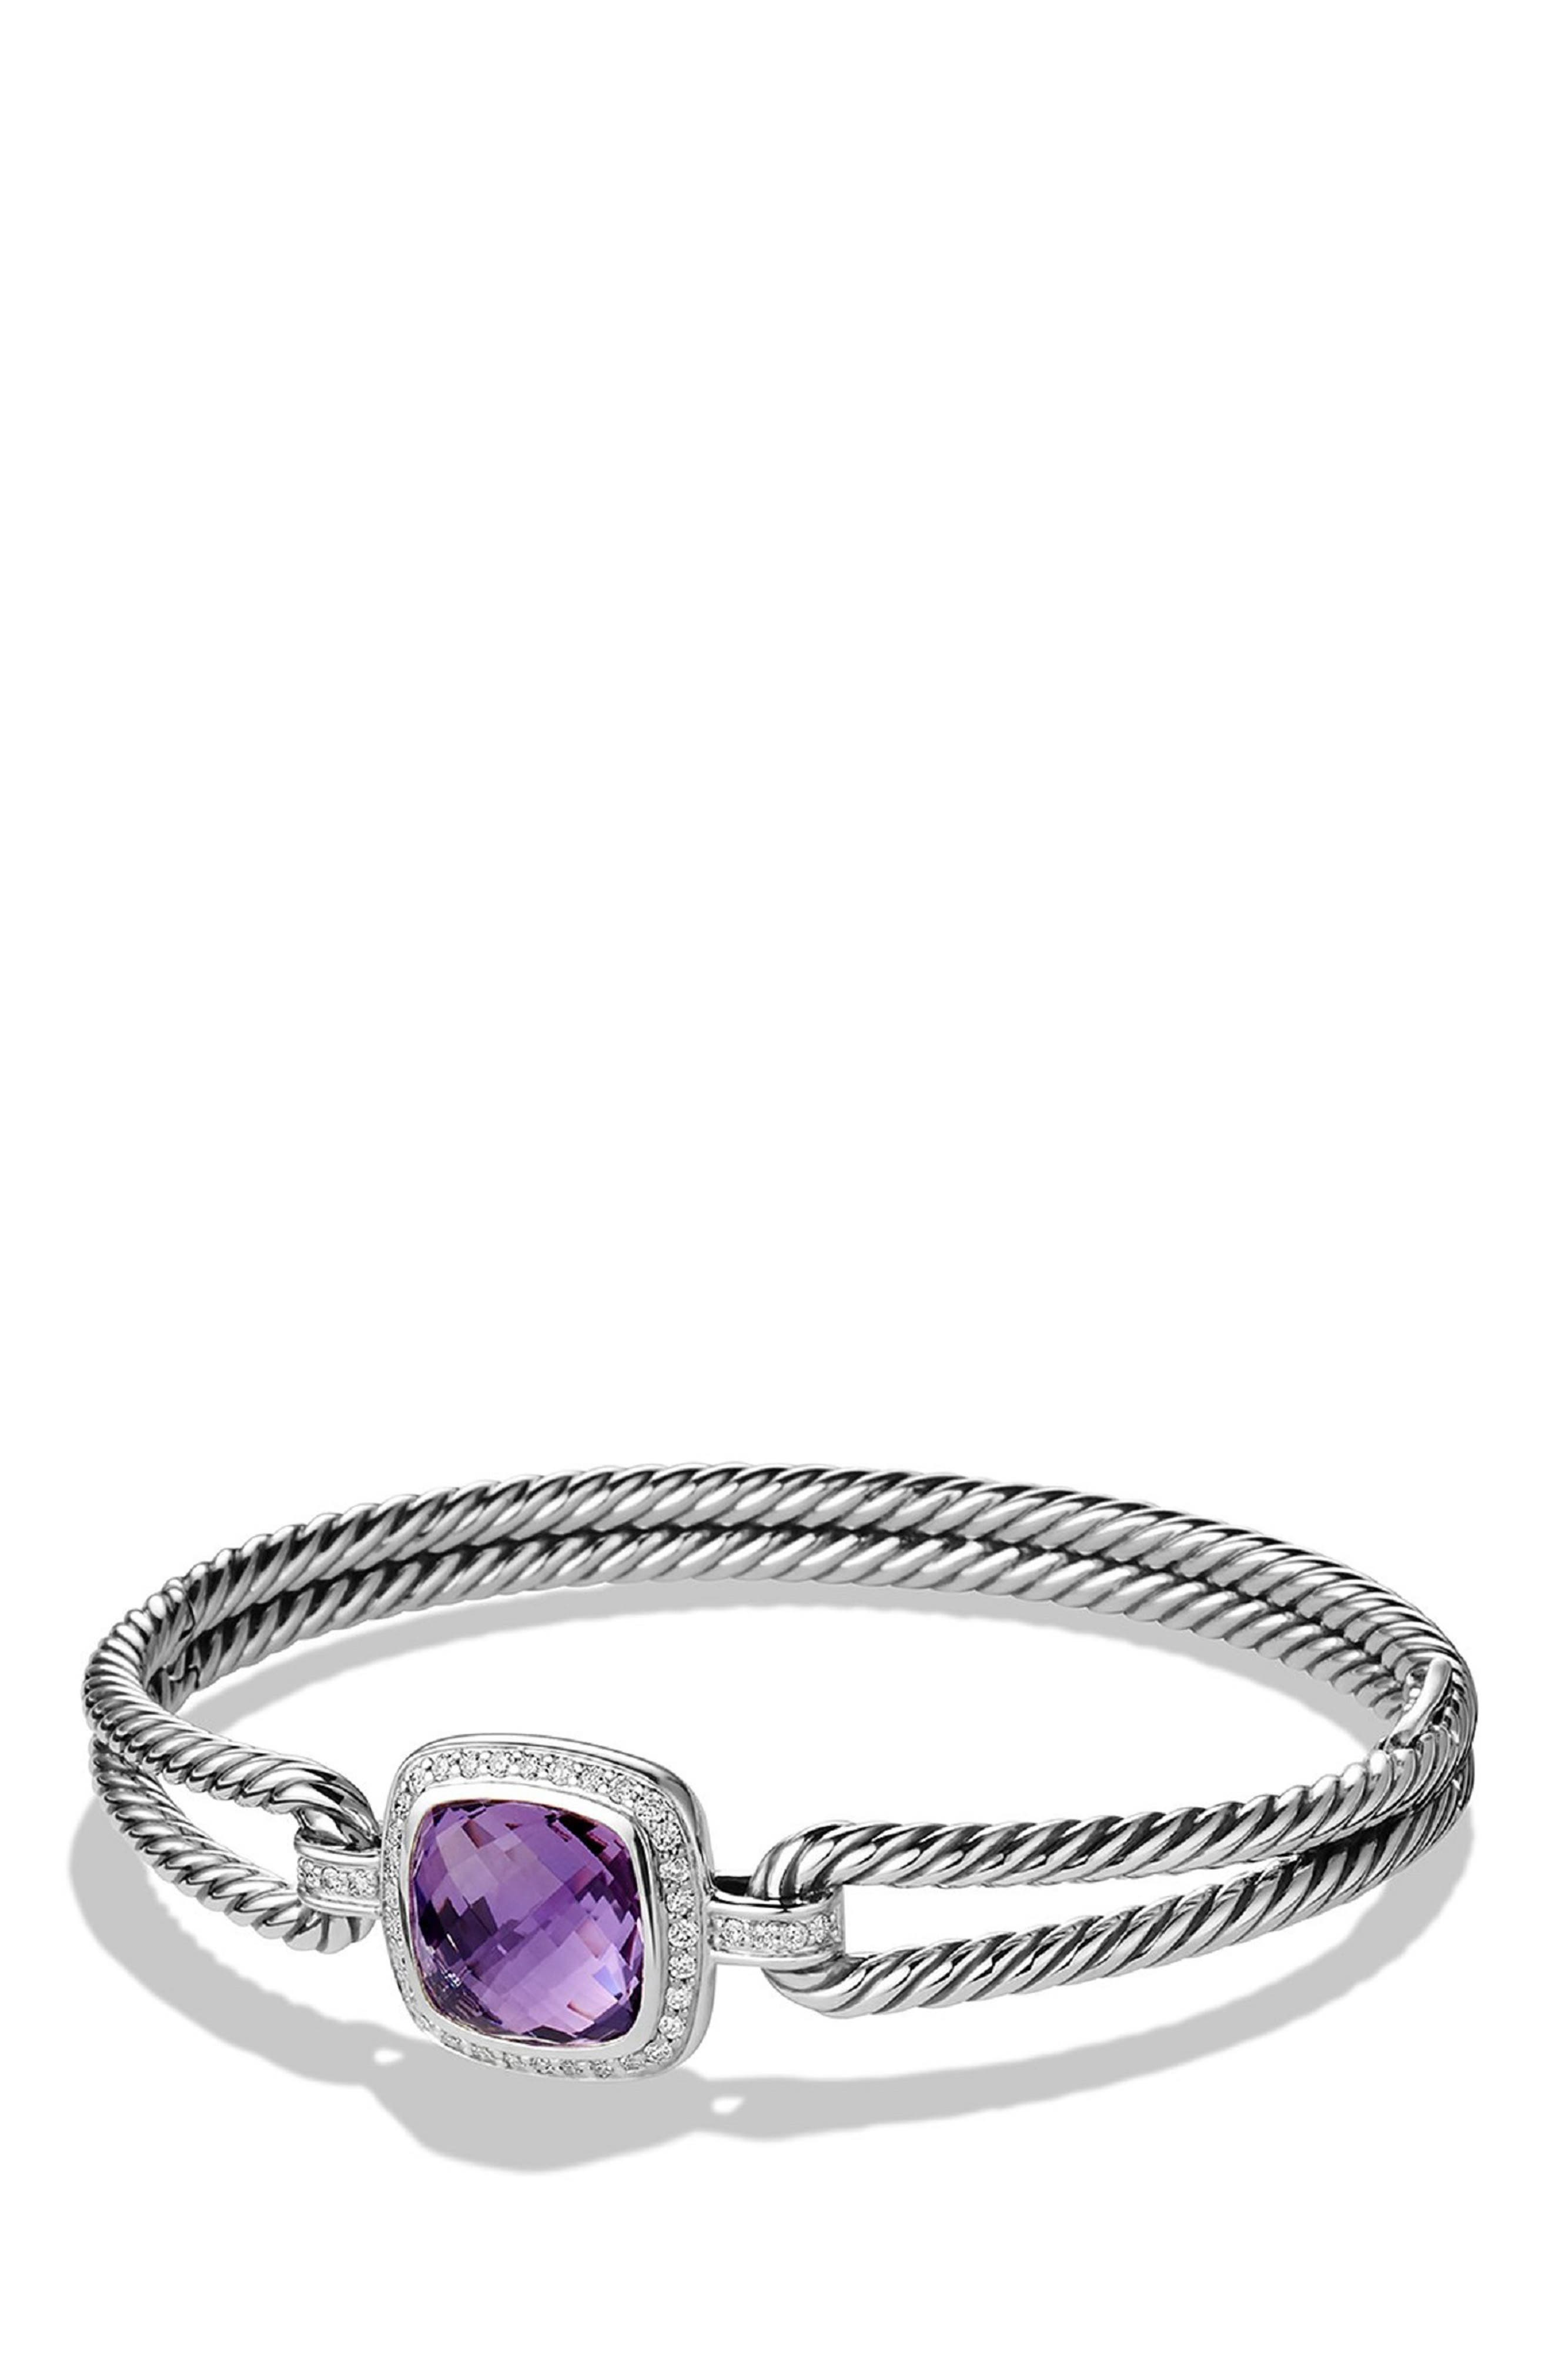 'Albion' Bracelet with Semiprecious Stone and Diamonds,                         Main,                         color, AMETHYST